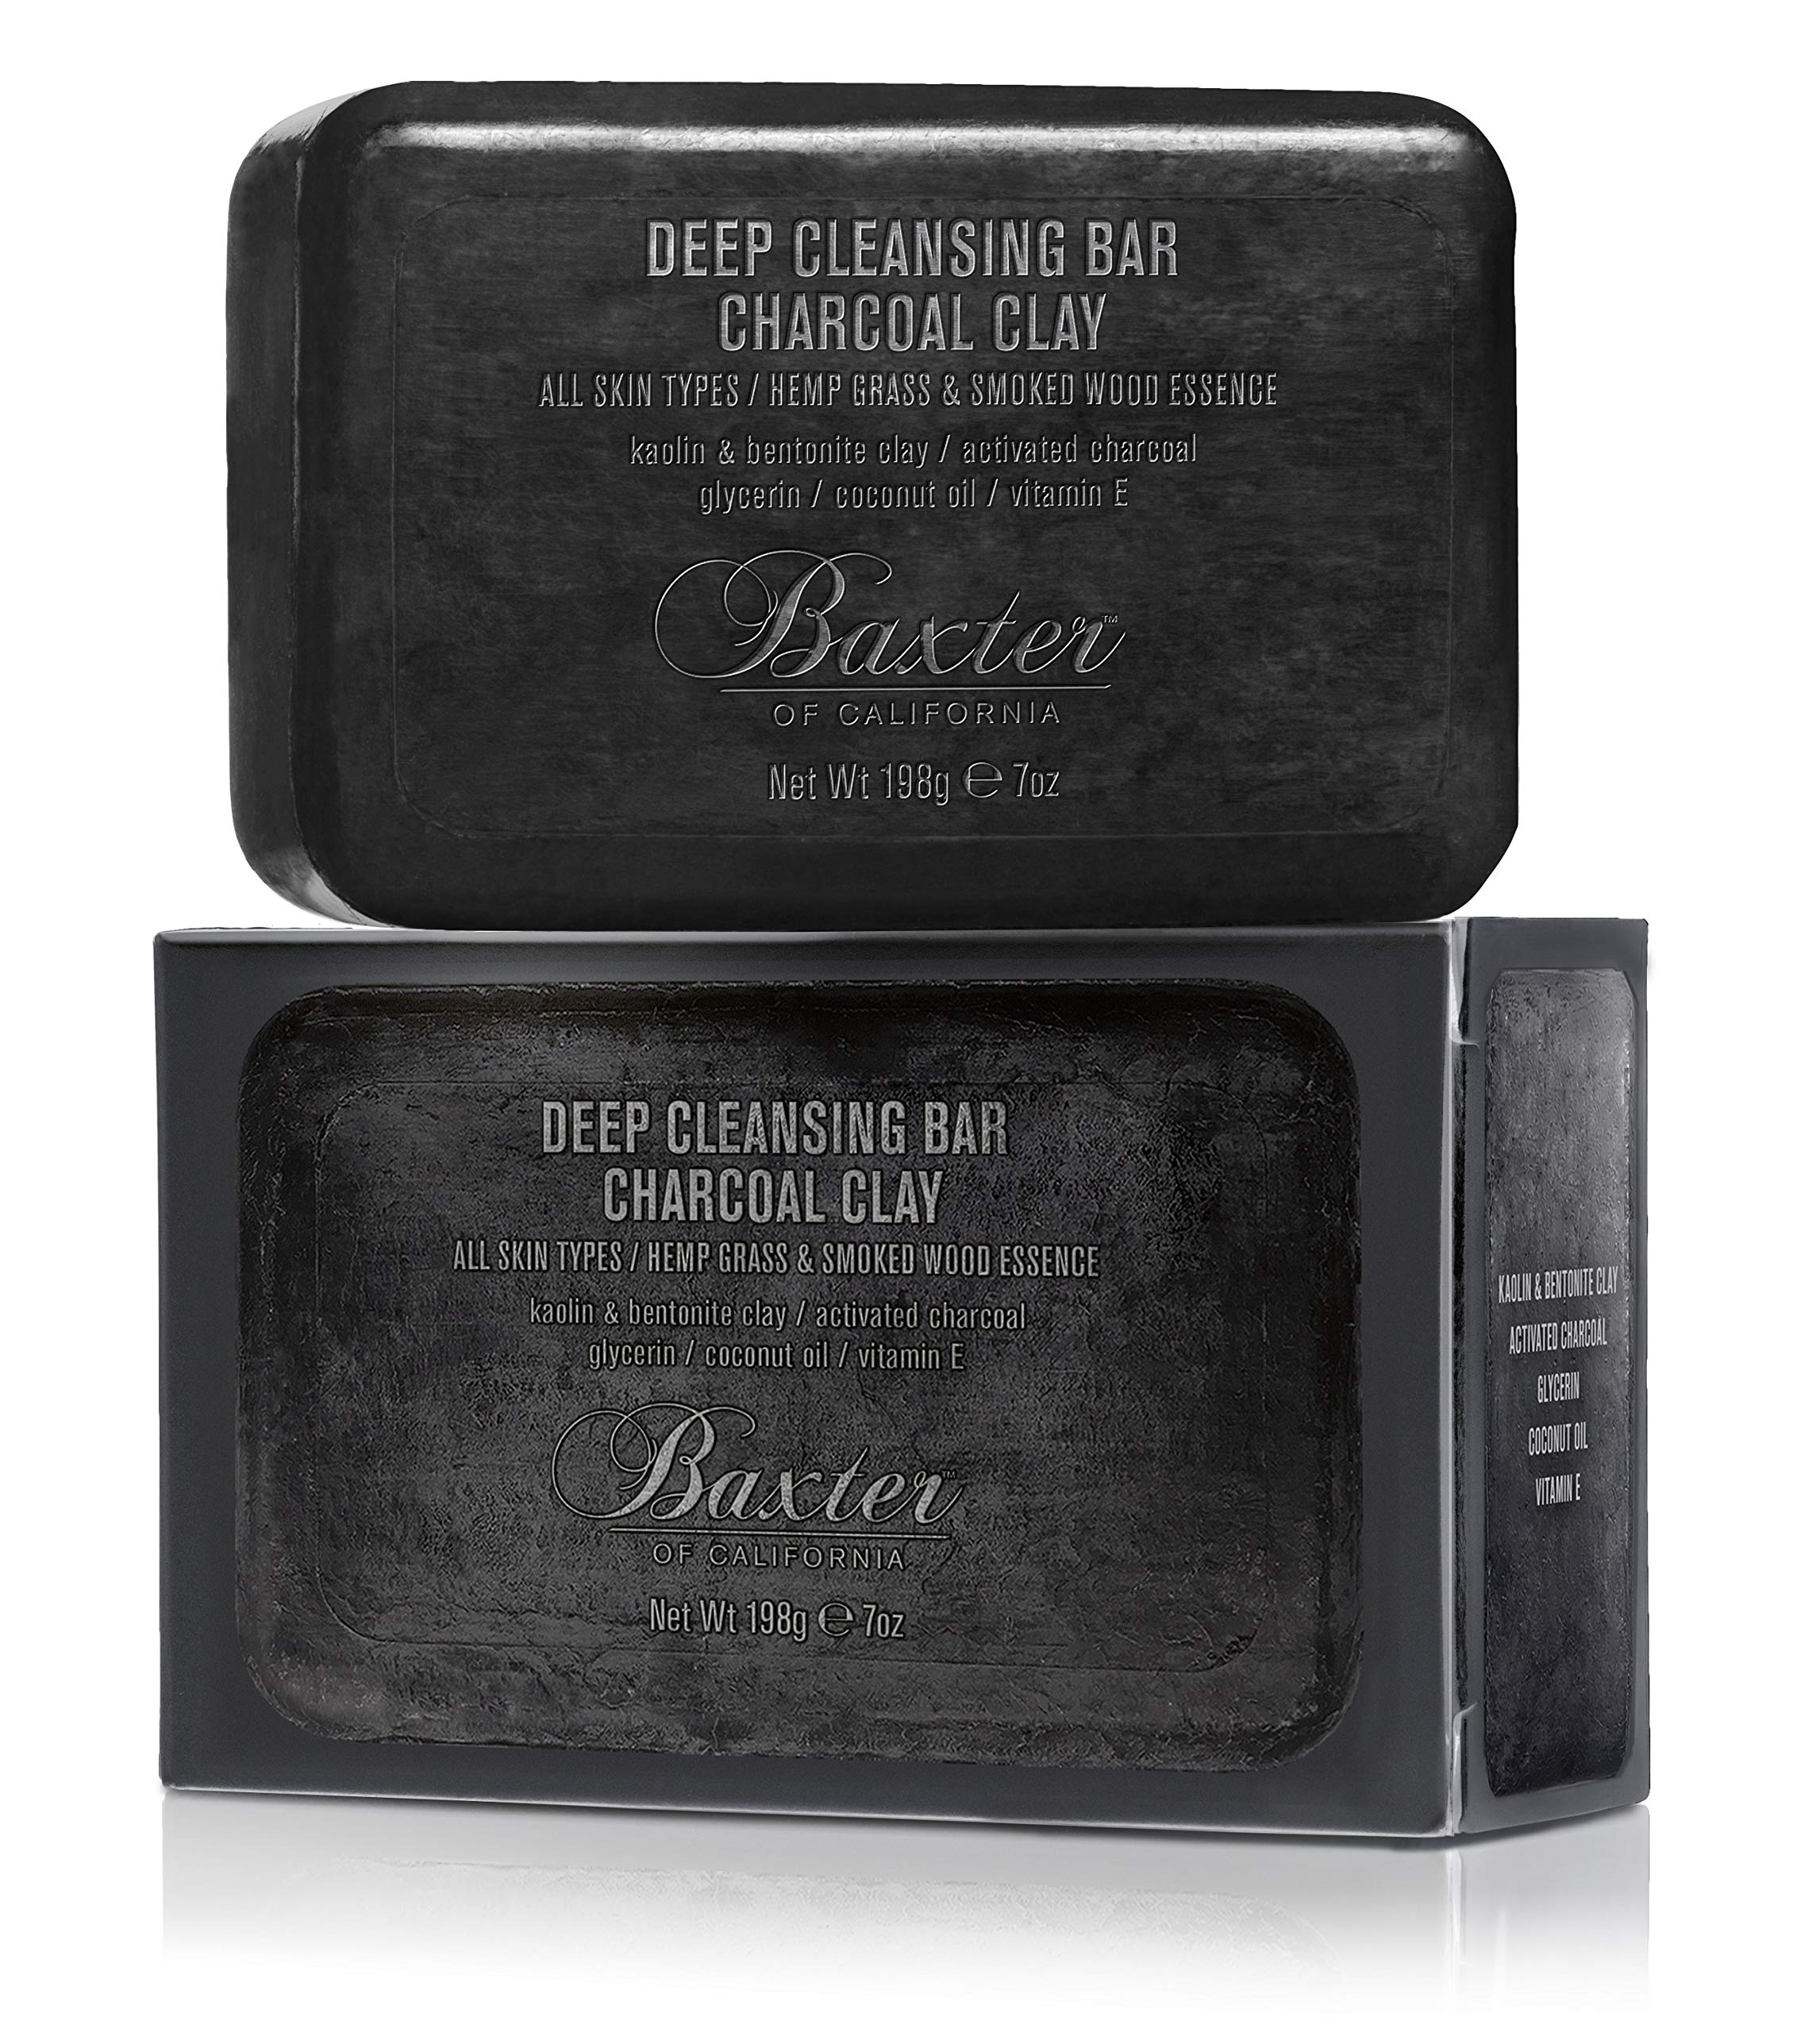 Baxter of California Deep Cleansing Body Soap Bar, Charcoal Clay, 7 oz. by Baxter of California